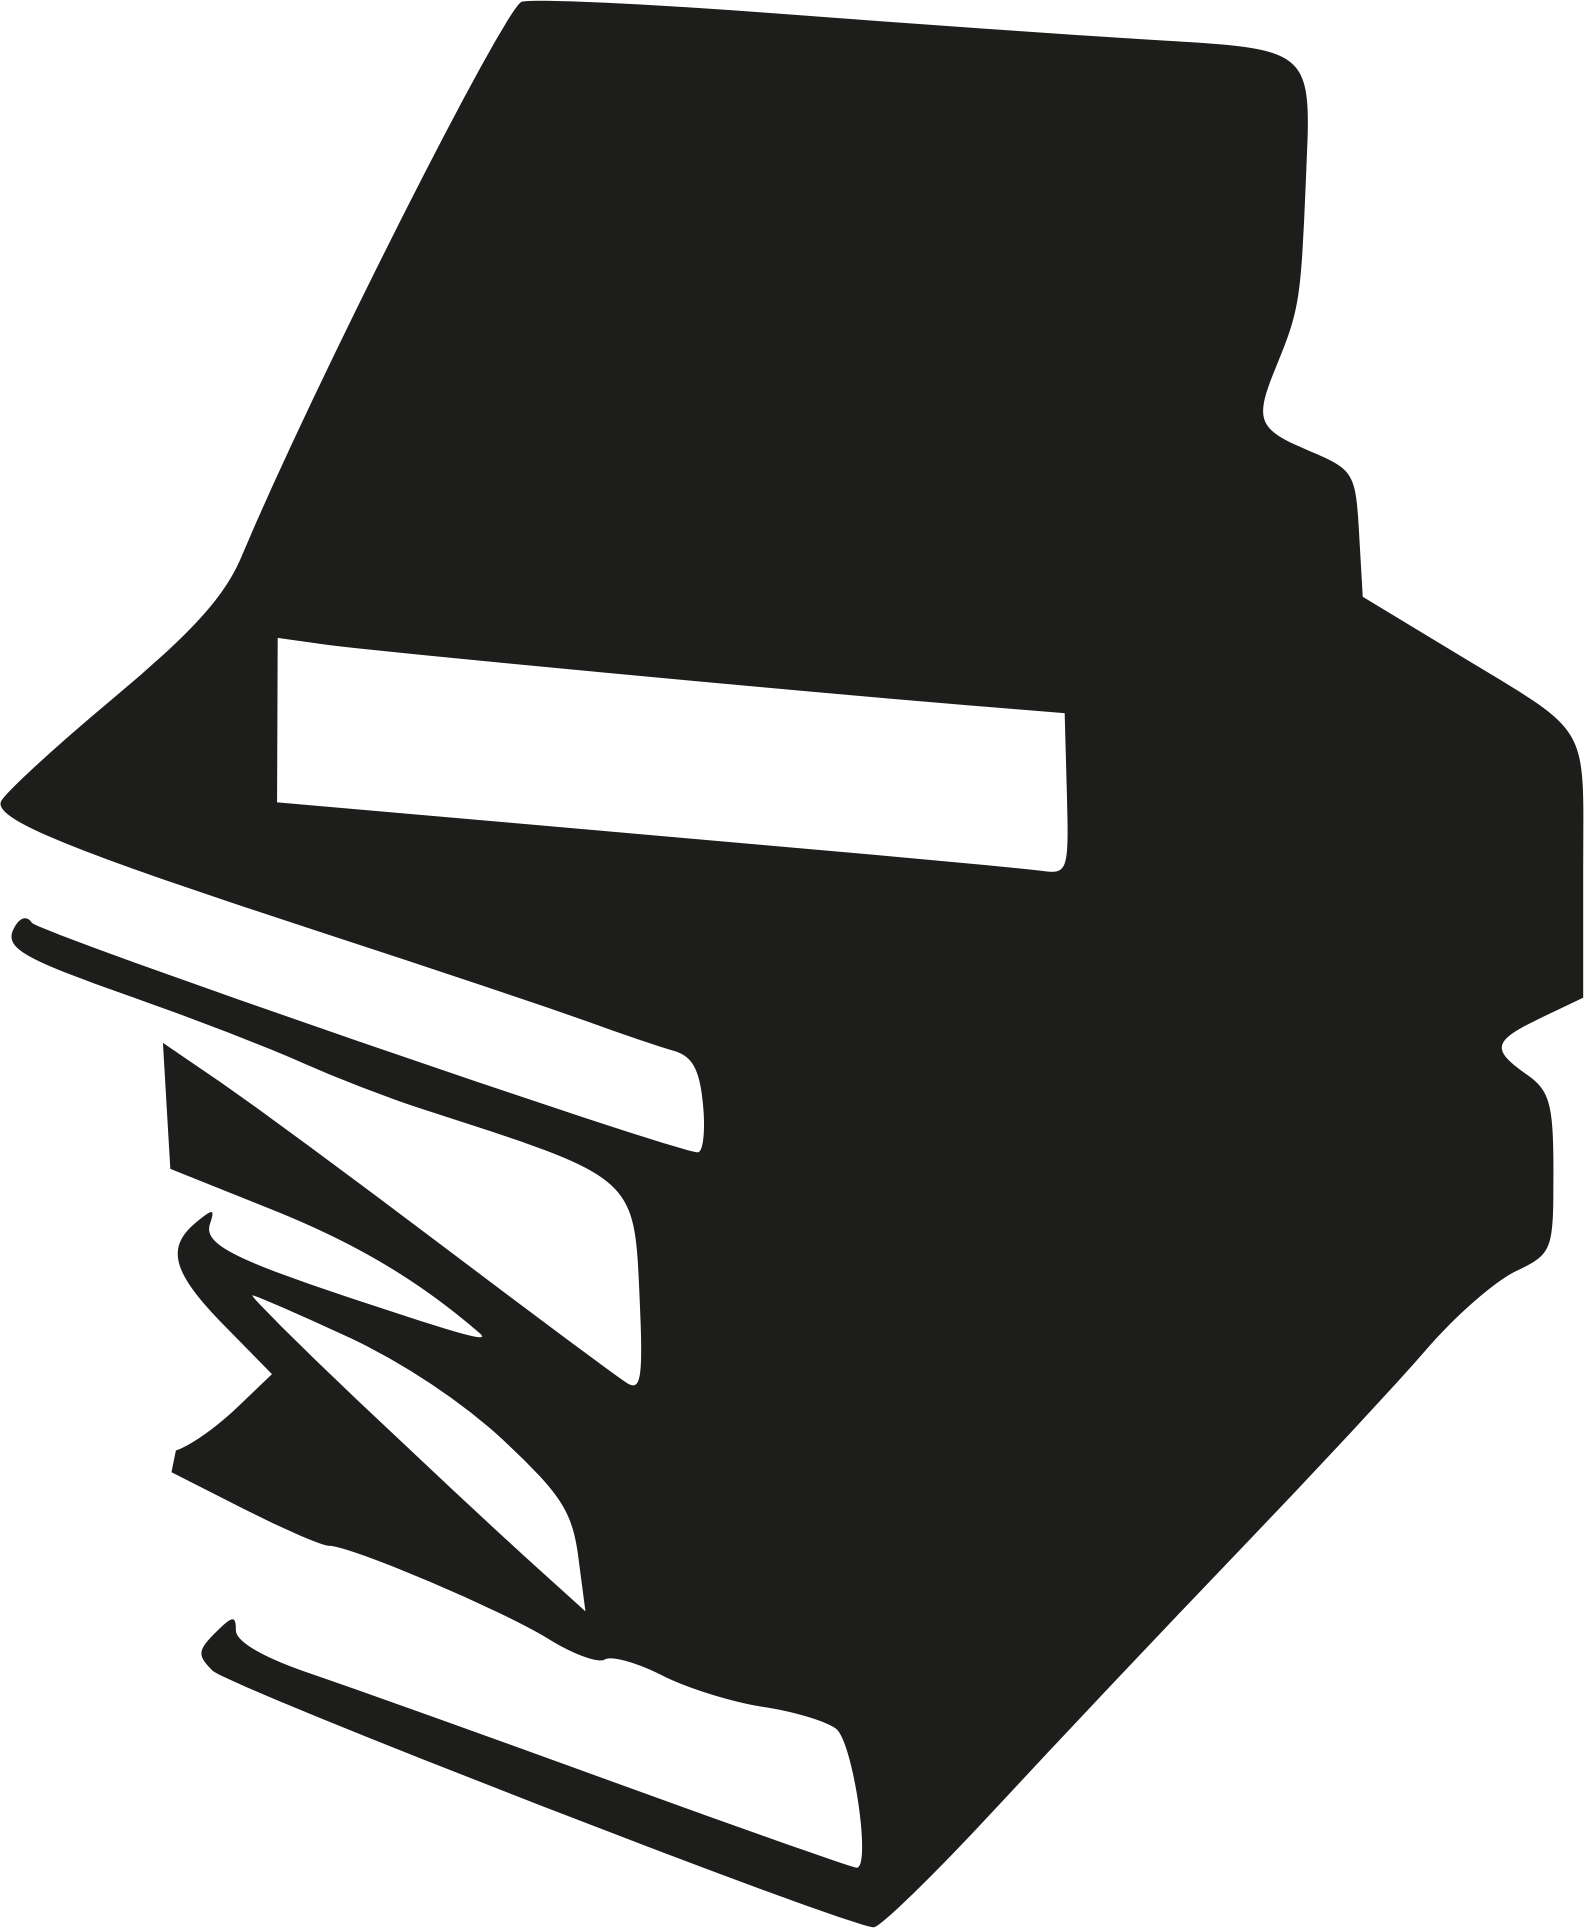 free download Bibliography clipart. Stack of books big.